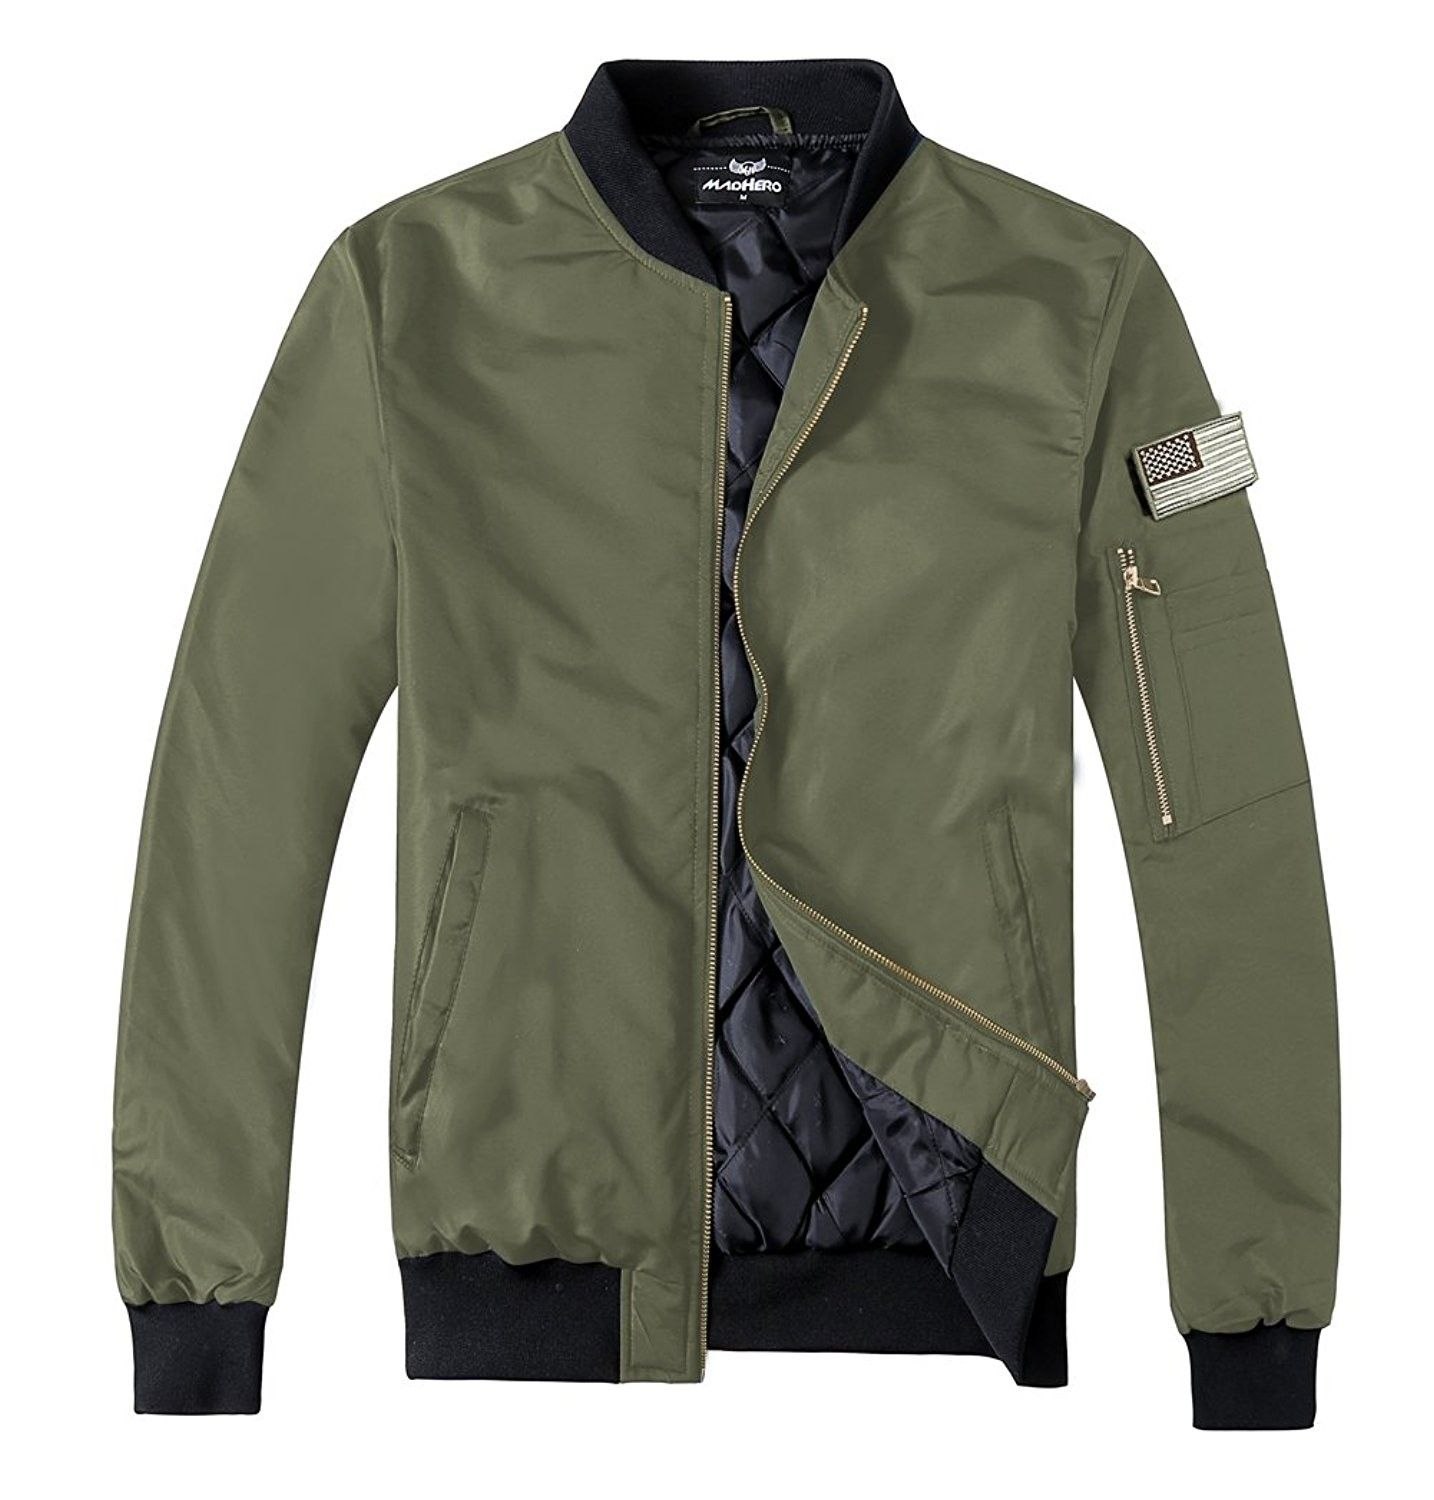 Men S Padded Flight Jacket Lightweight Quilted Coat With Patches Army Green Ci188quqr2r Jackets Men Fashion Mens Outerwear Jacket Jackets [ 1500 x 1434 Pixel ]